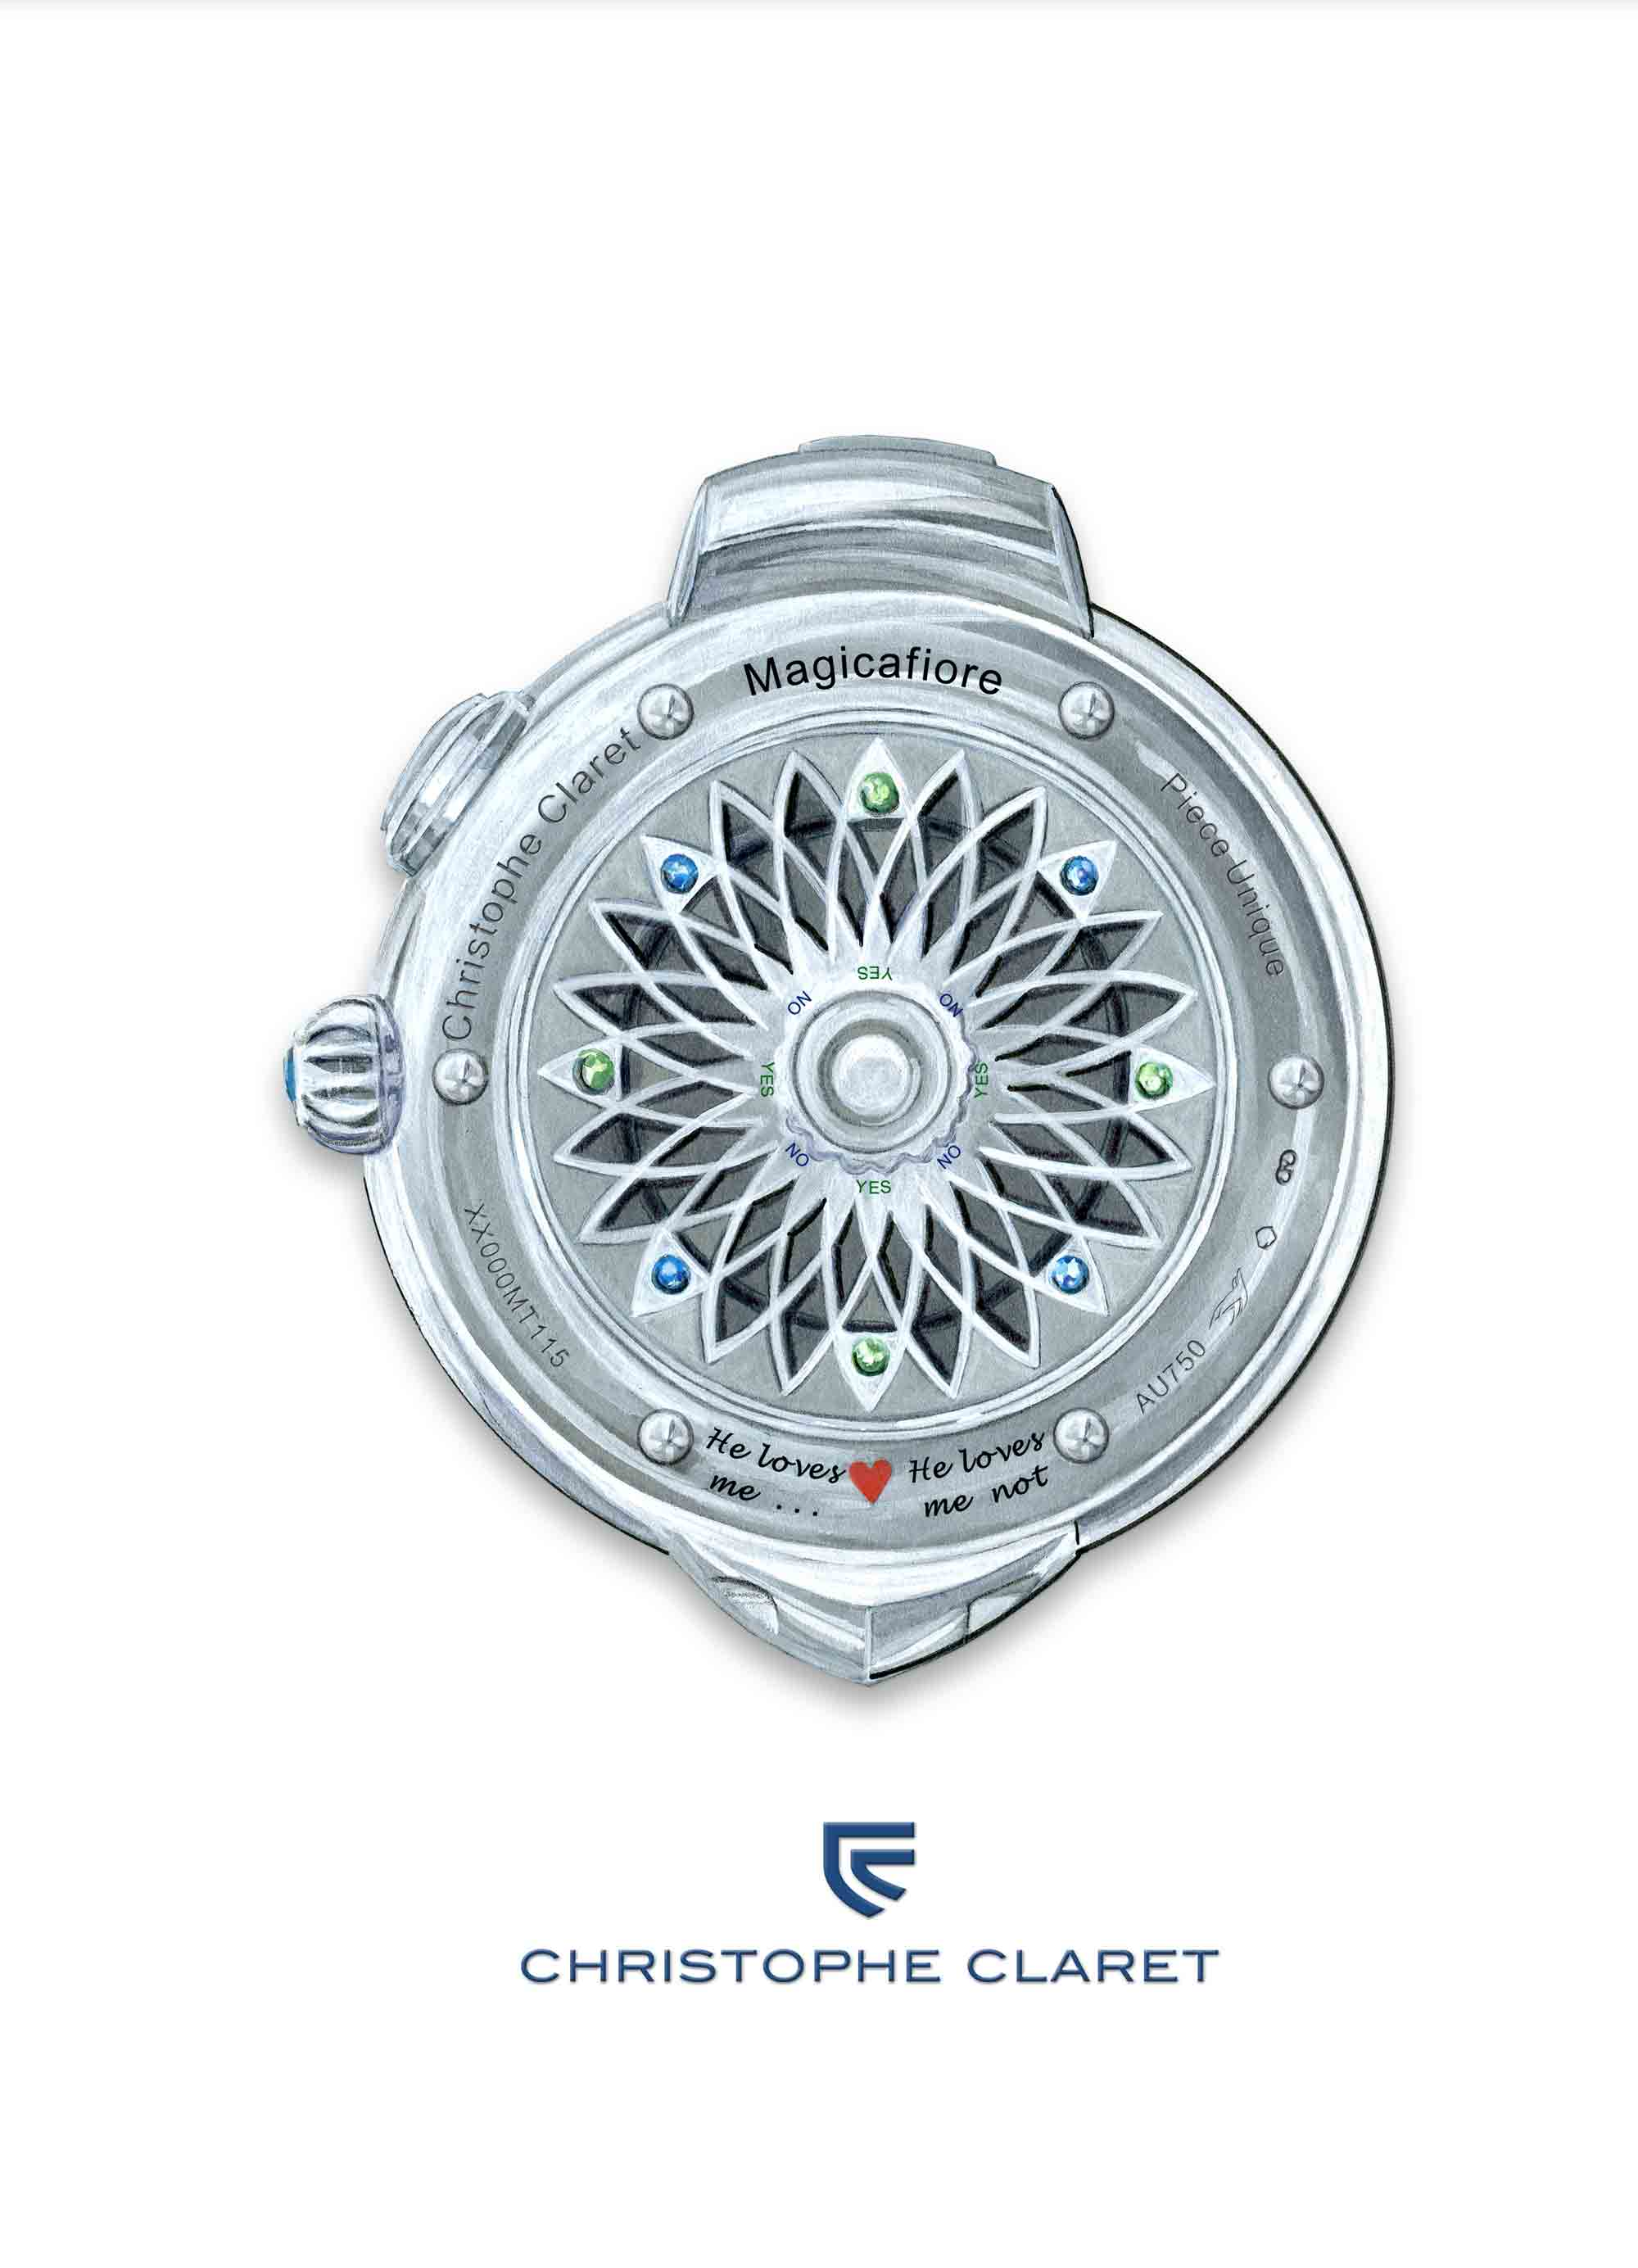 Magicafiore pour Only Watch 2017